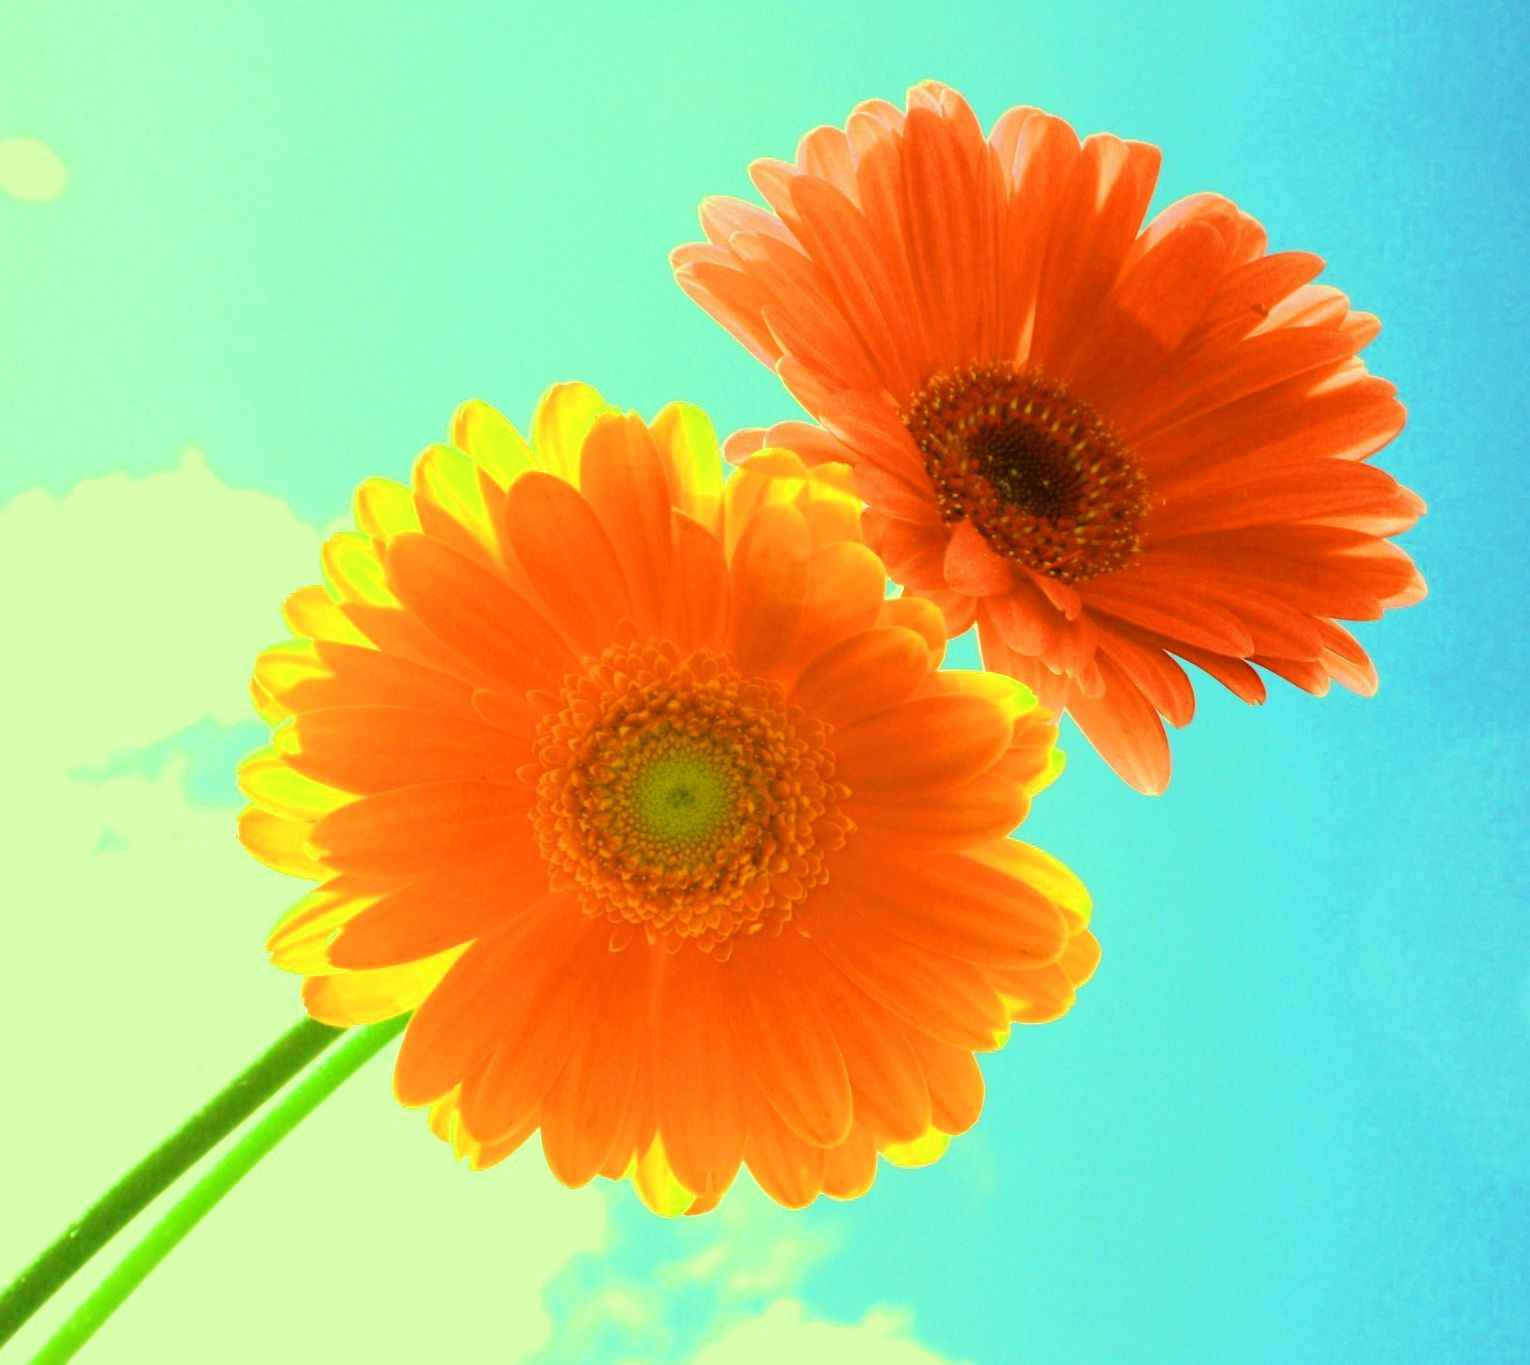 Beautiful Whatsapp Dp For Sunset Flower Images Flower Images Flowers Flower Photos